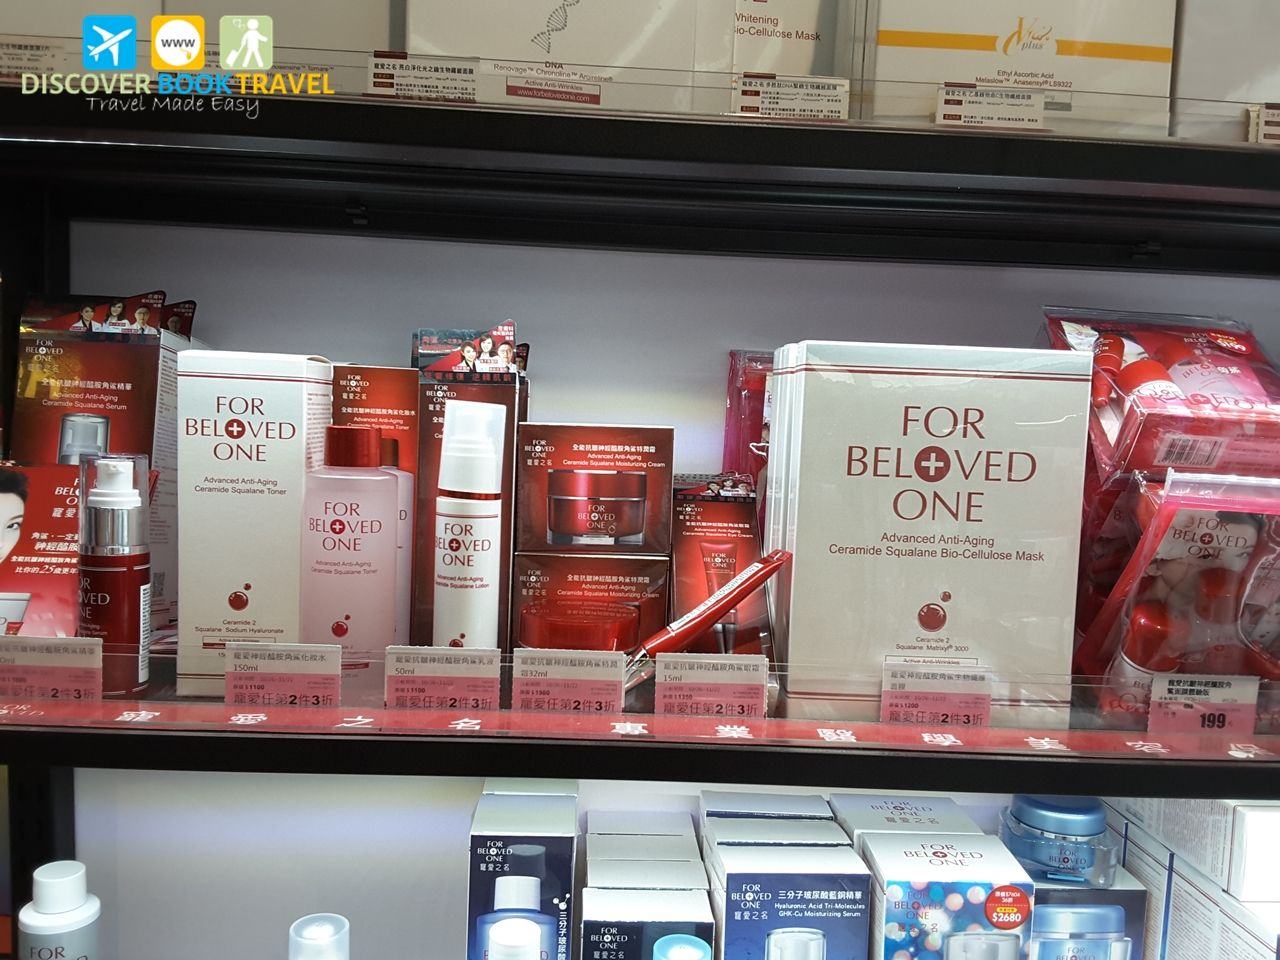 Top 10 Skincare Products To Buy In Taiwan Updated 2019 Discover Book Travel Singapore Travel Blog Hot Travel Travel Book Singapore Travel